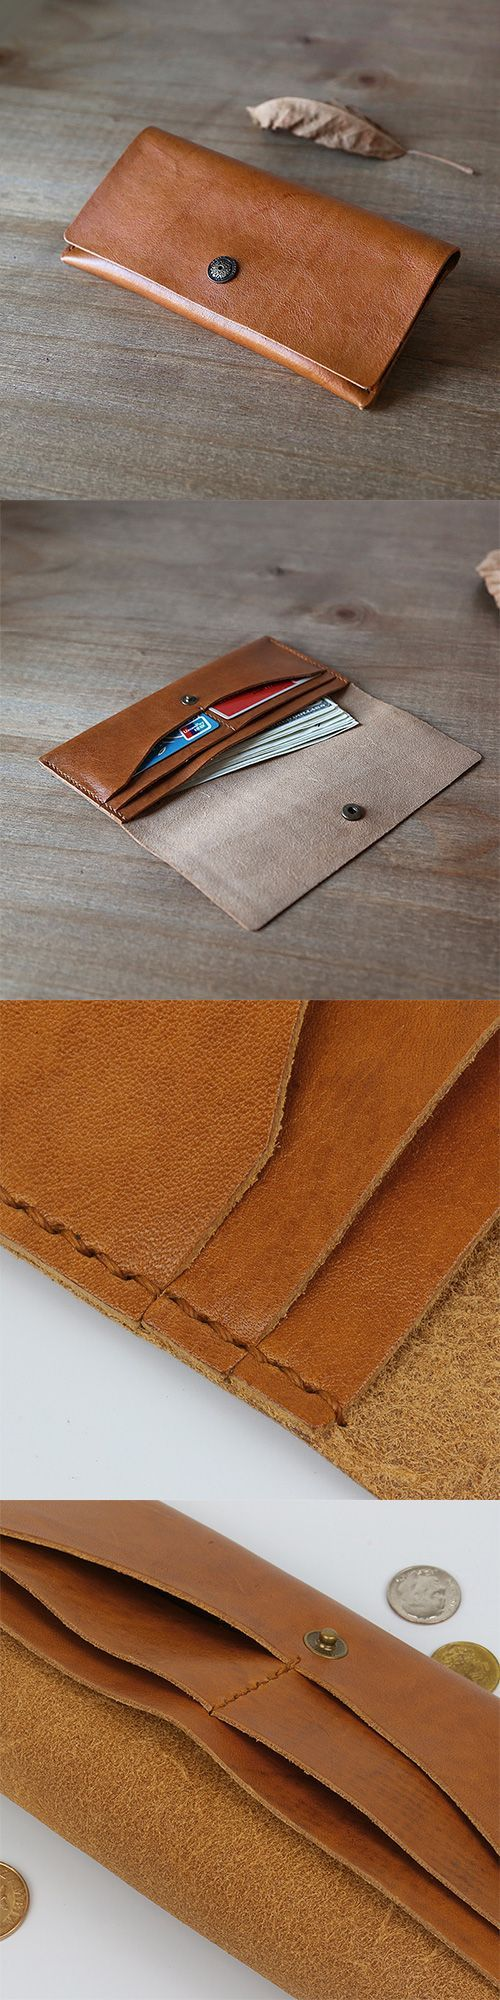 Handmade leather vintage women long wallet clutch …